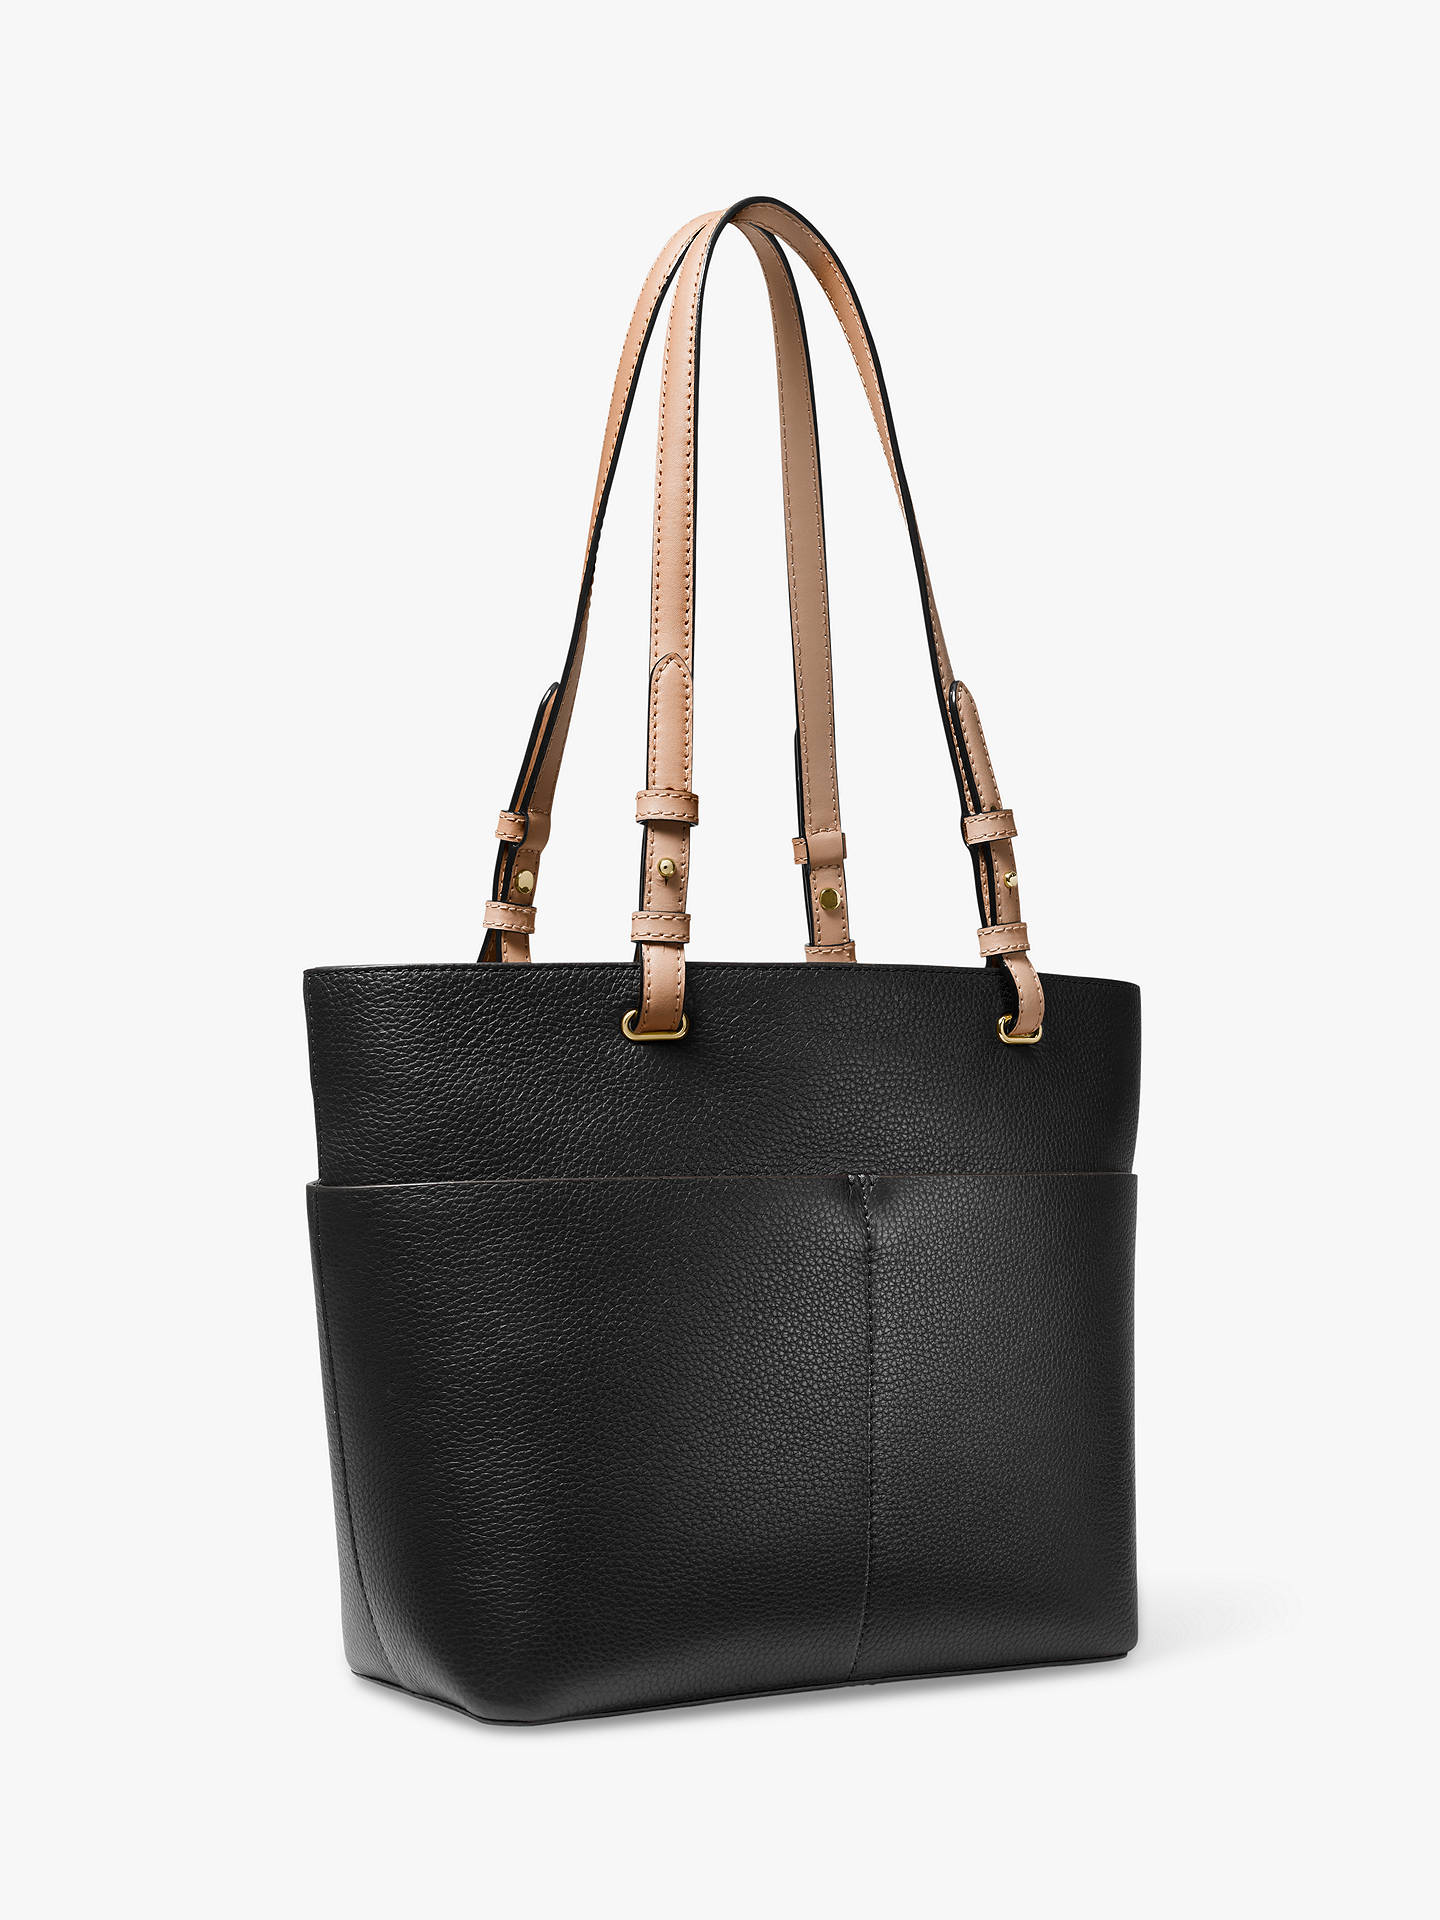 29c6b24f73ce ... Buy MICHAEL Michael Kors Bedford Pocket Tote Bag, Black Online at  johnlewis.com ...